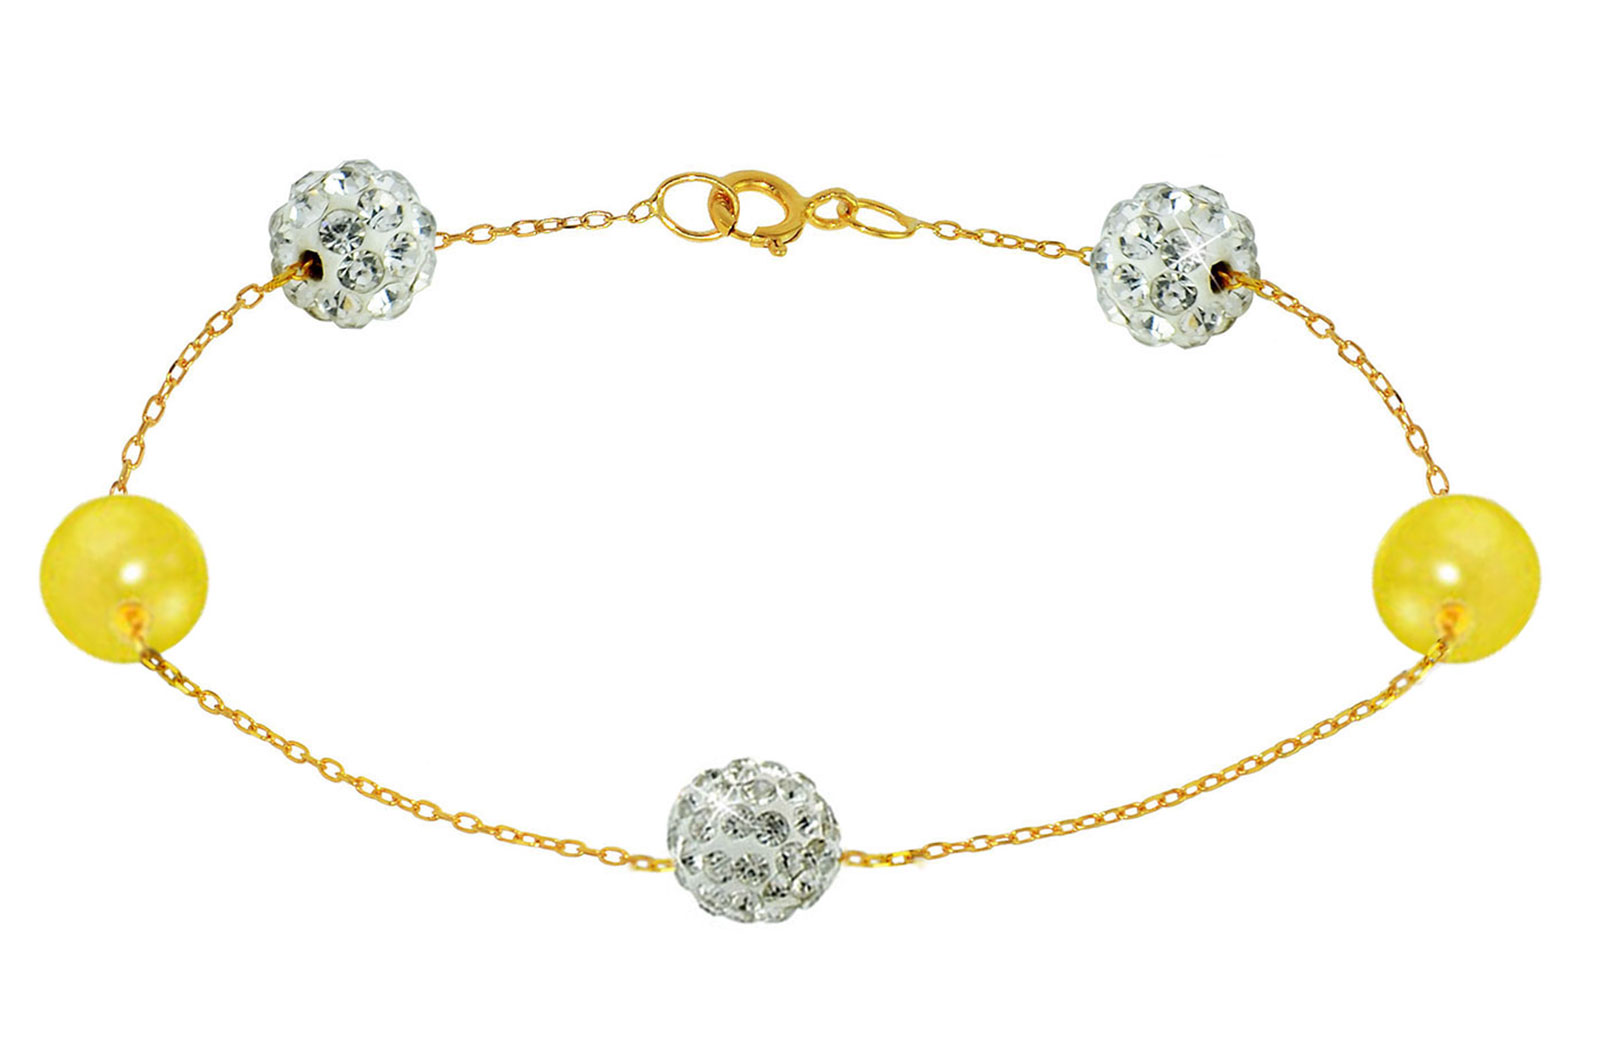 Vera Perla 18K Solid Gold Gradual Built-in 5-6mm Crystal Ball and Yellow Pearls Bracelet